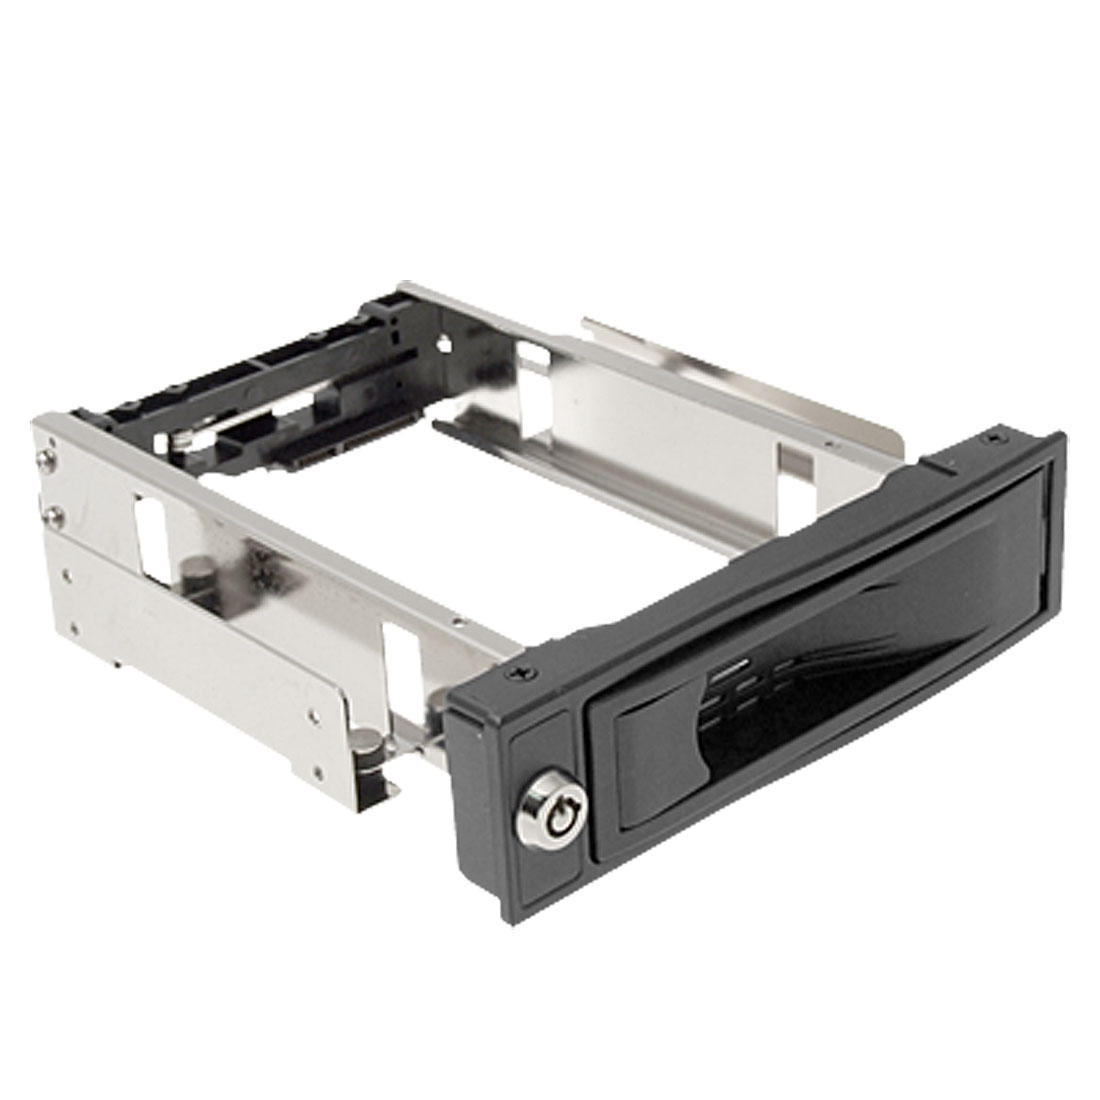 "Security Portable 3.5"" SATA HDD-ROM Hard Disk Bracket Rack"